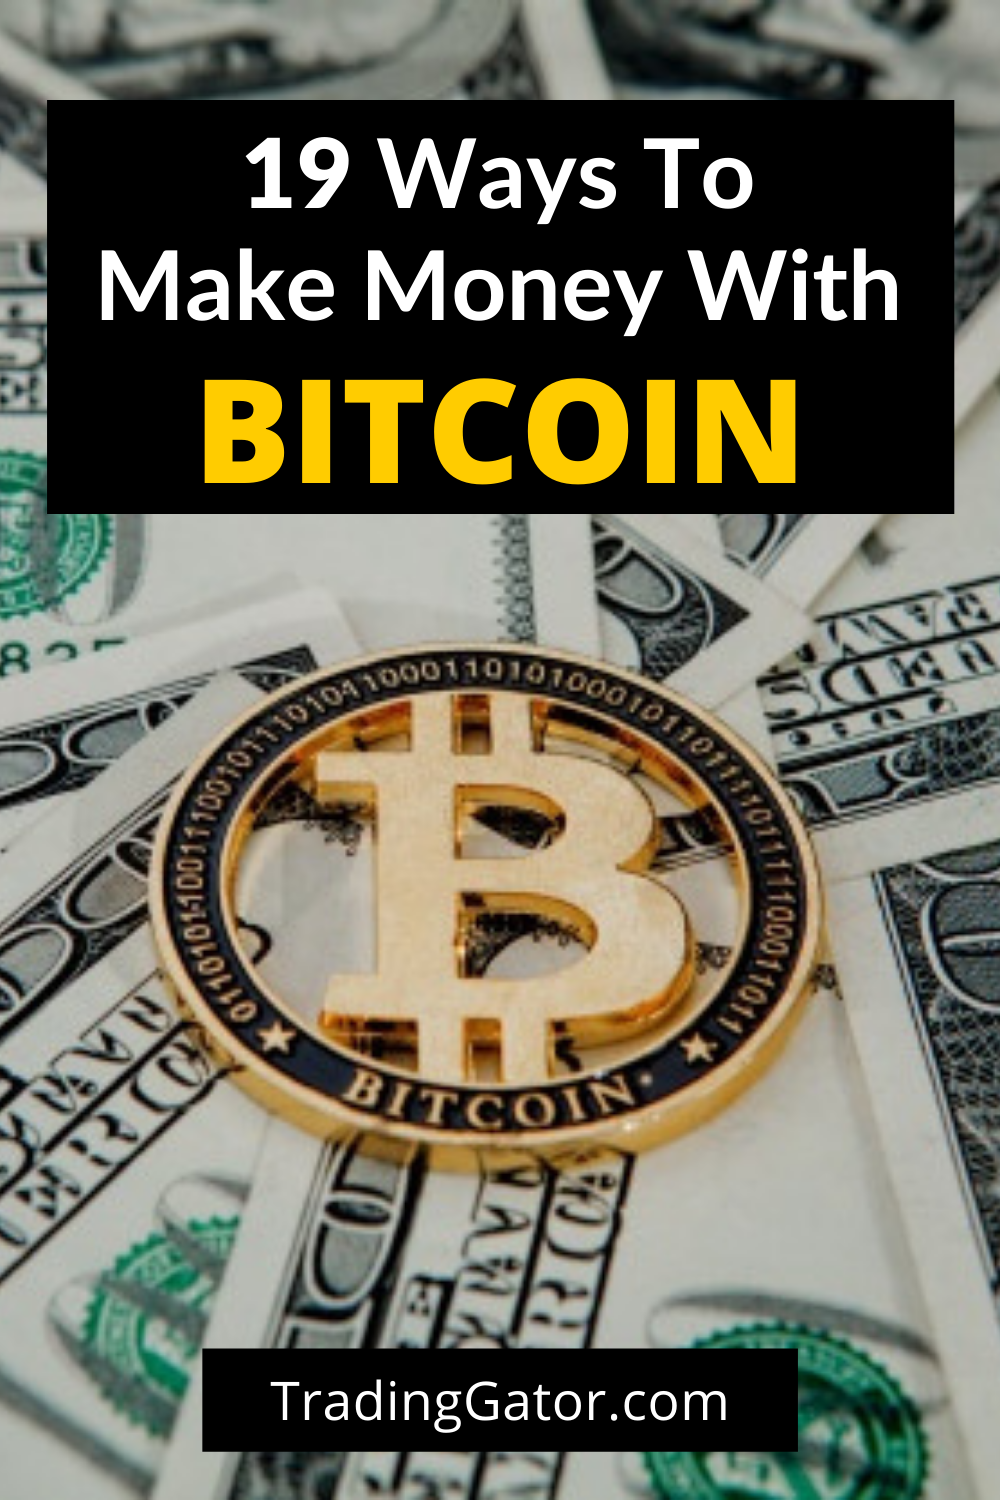 19 Ways to Make Money with Bitcoin 🤑 (Ultimate Guide)